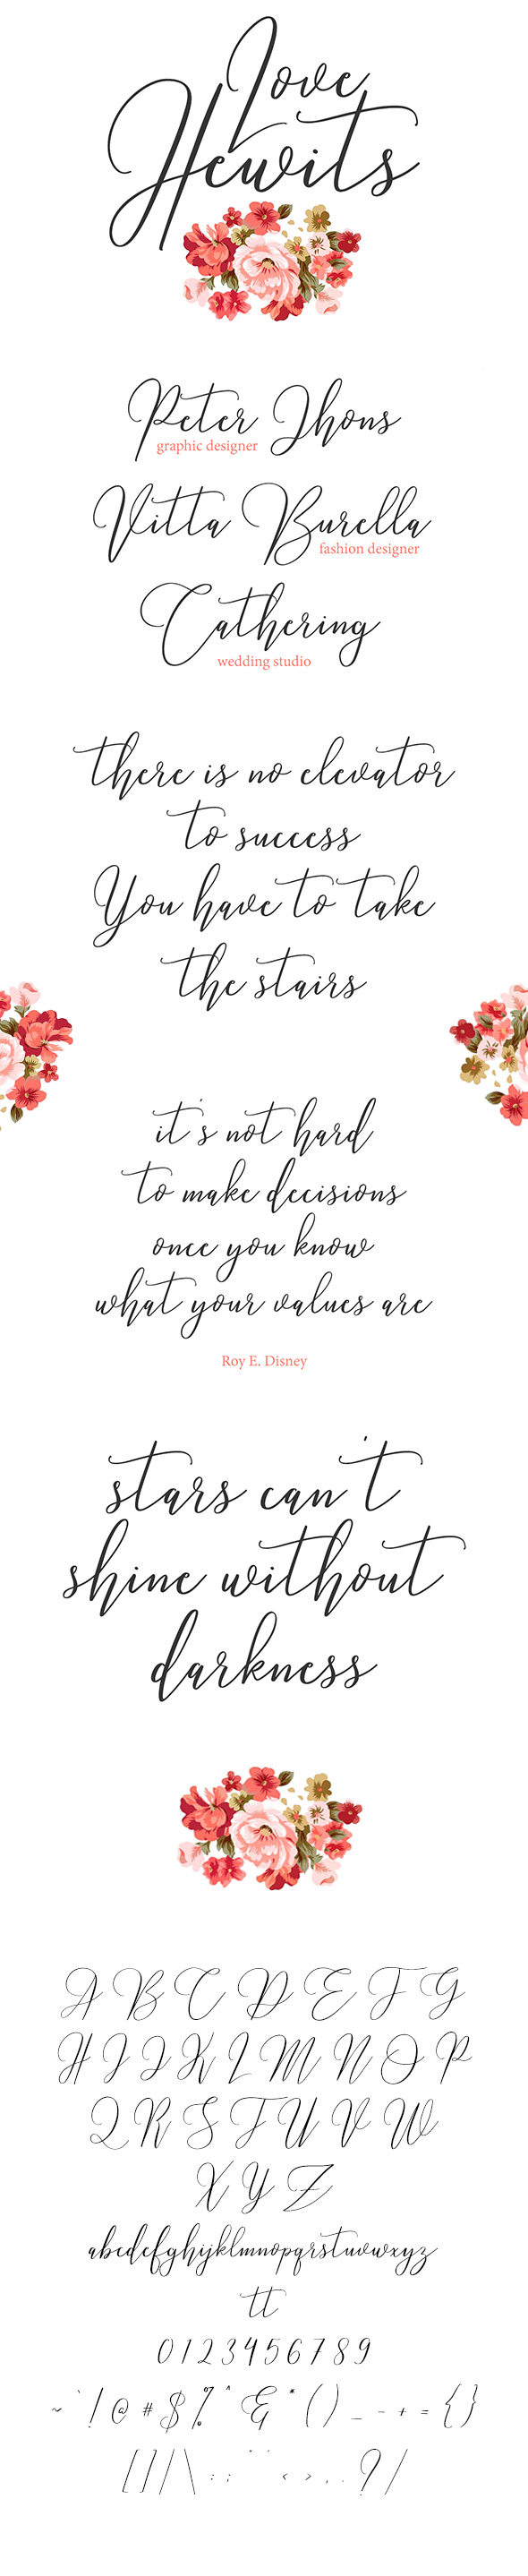 Love Hewits Typeface - Calligraphy Script